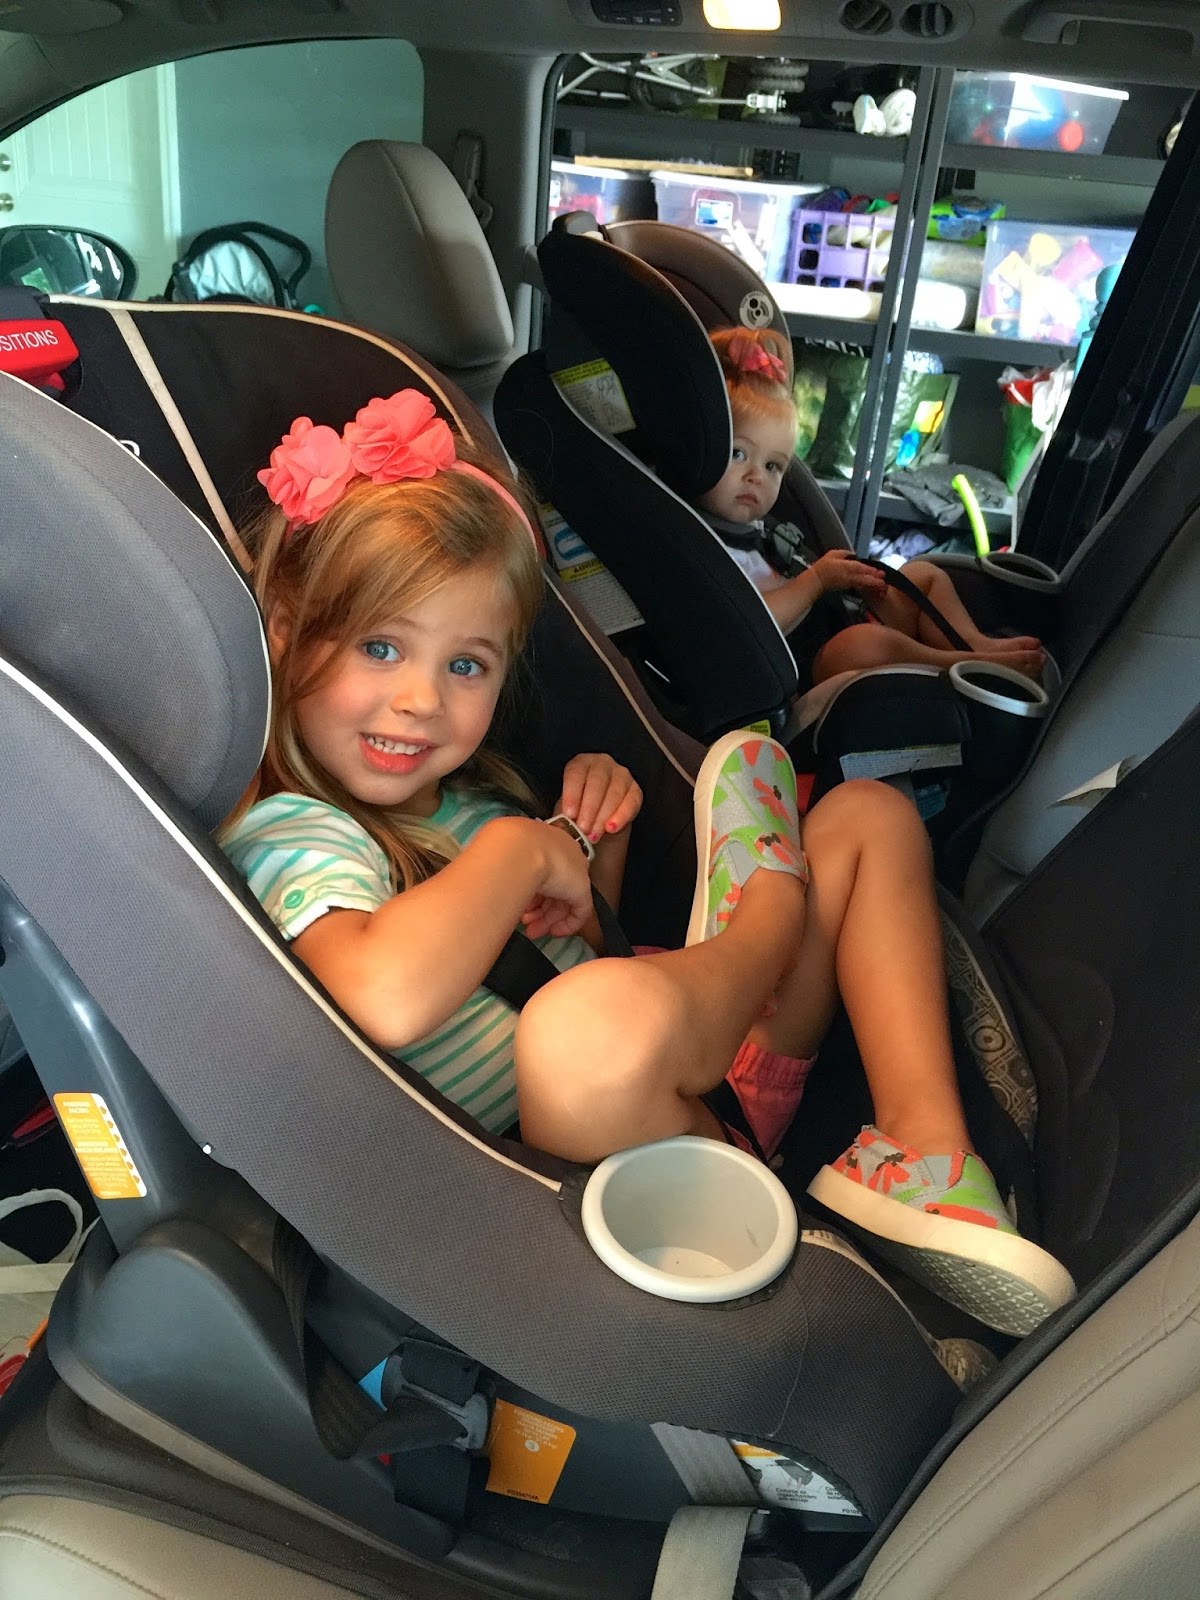 Car Seat Safety: Beyond Age 2 - The Journey of Parenthood...